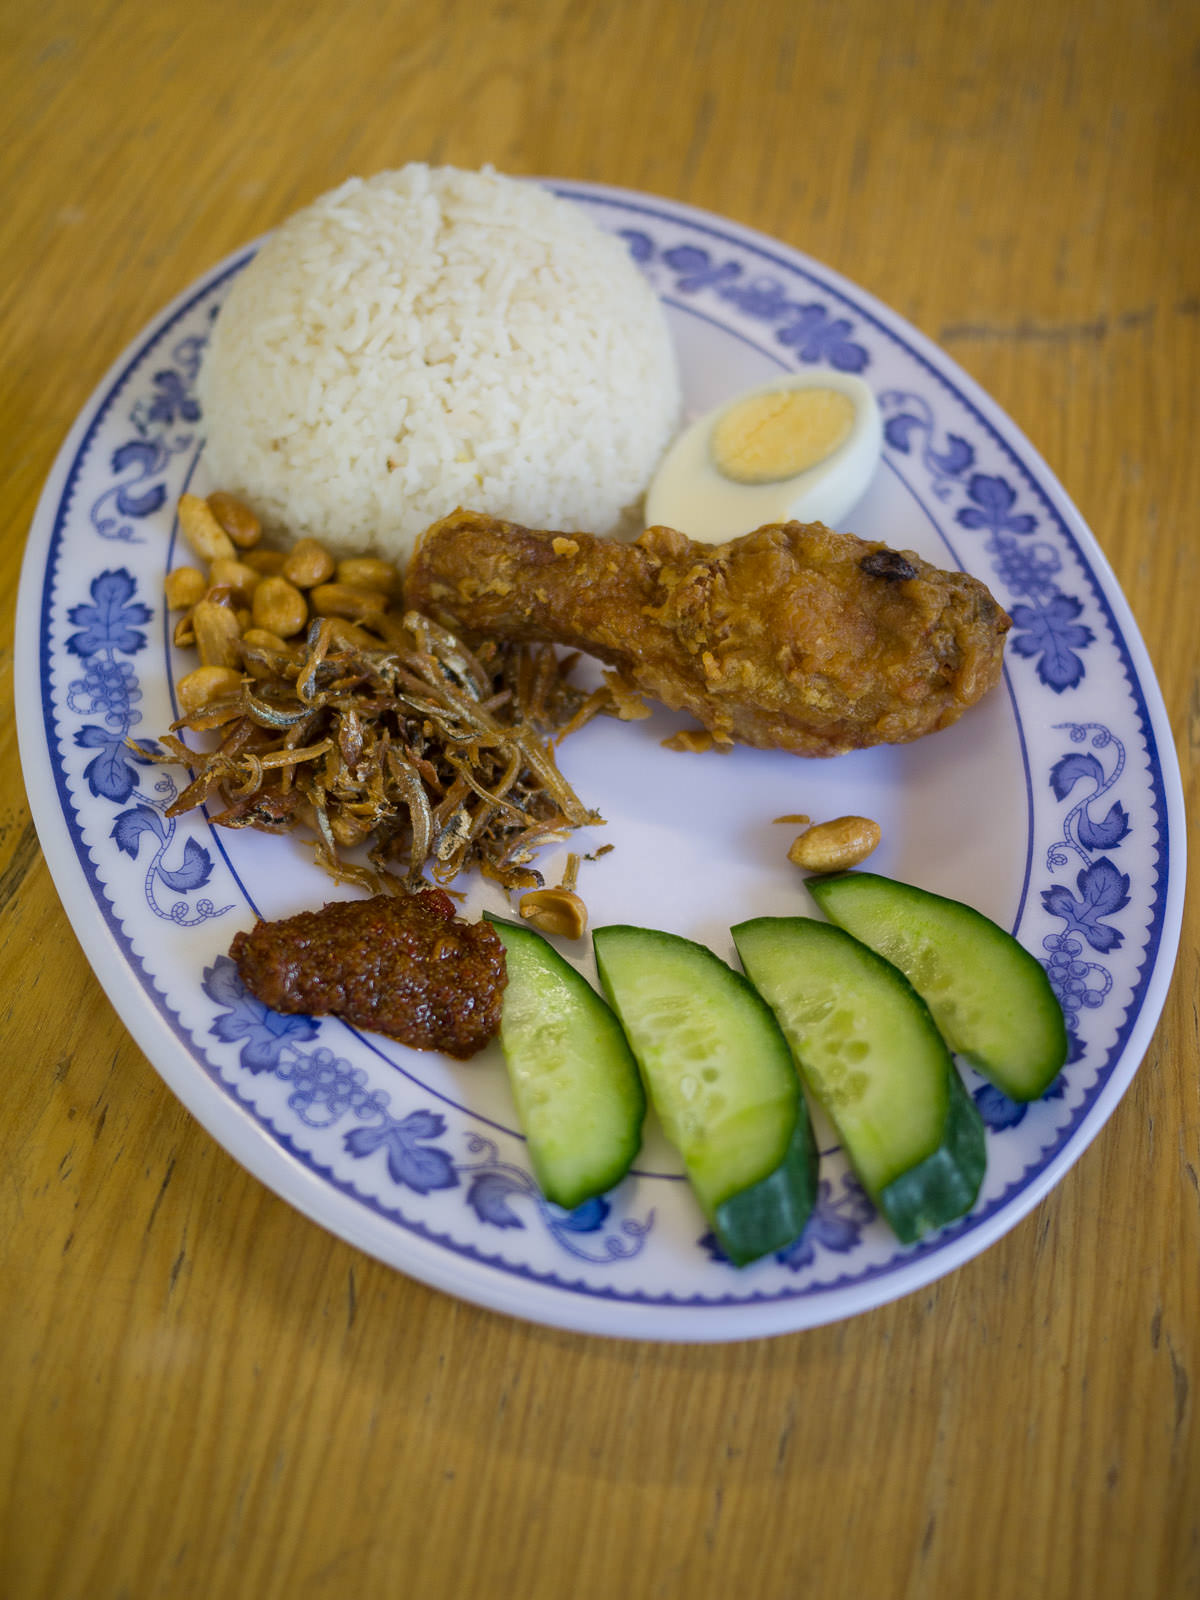 Nasi lemak with ayam goreng (fried chicken)